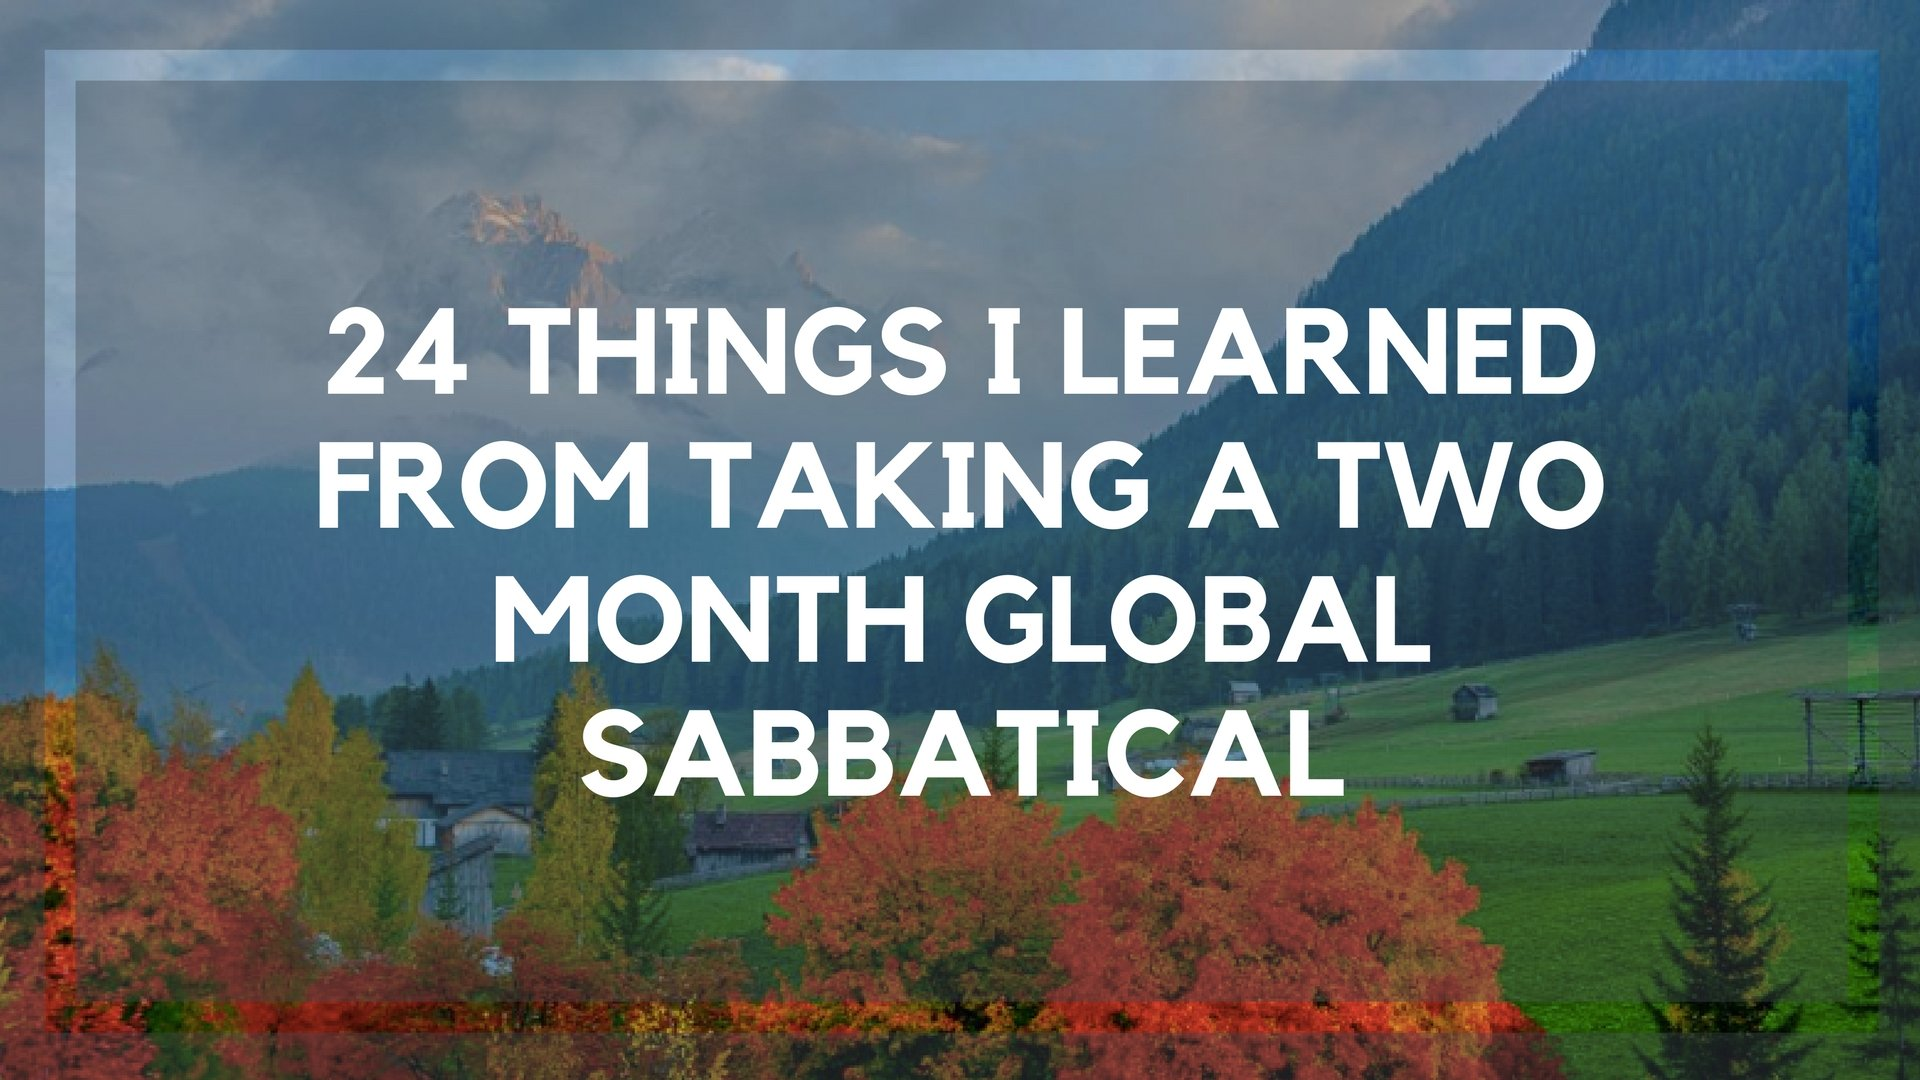 24 Things I Learned from Taking a Two Month Global Sabbatical